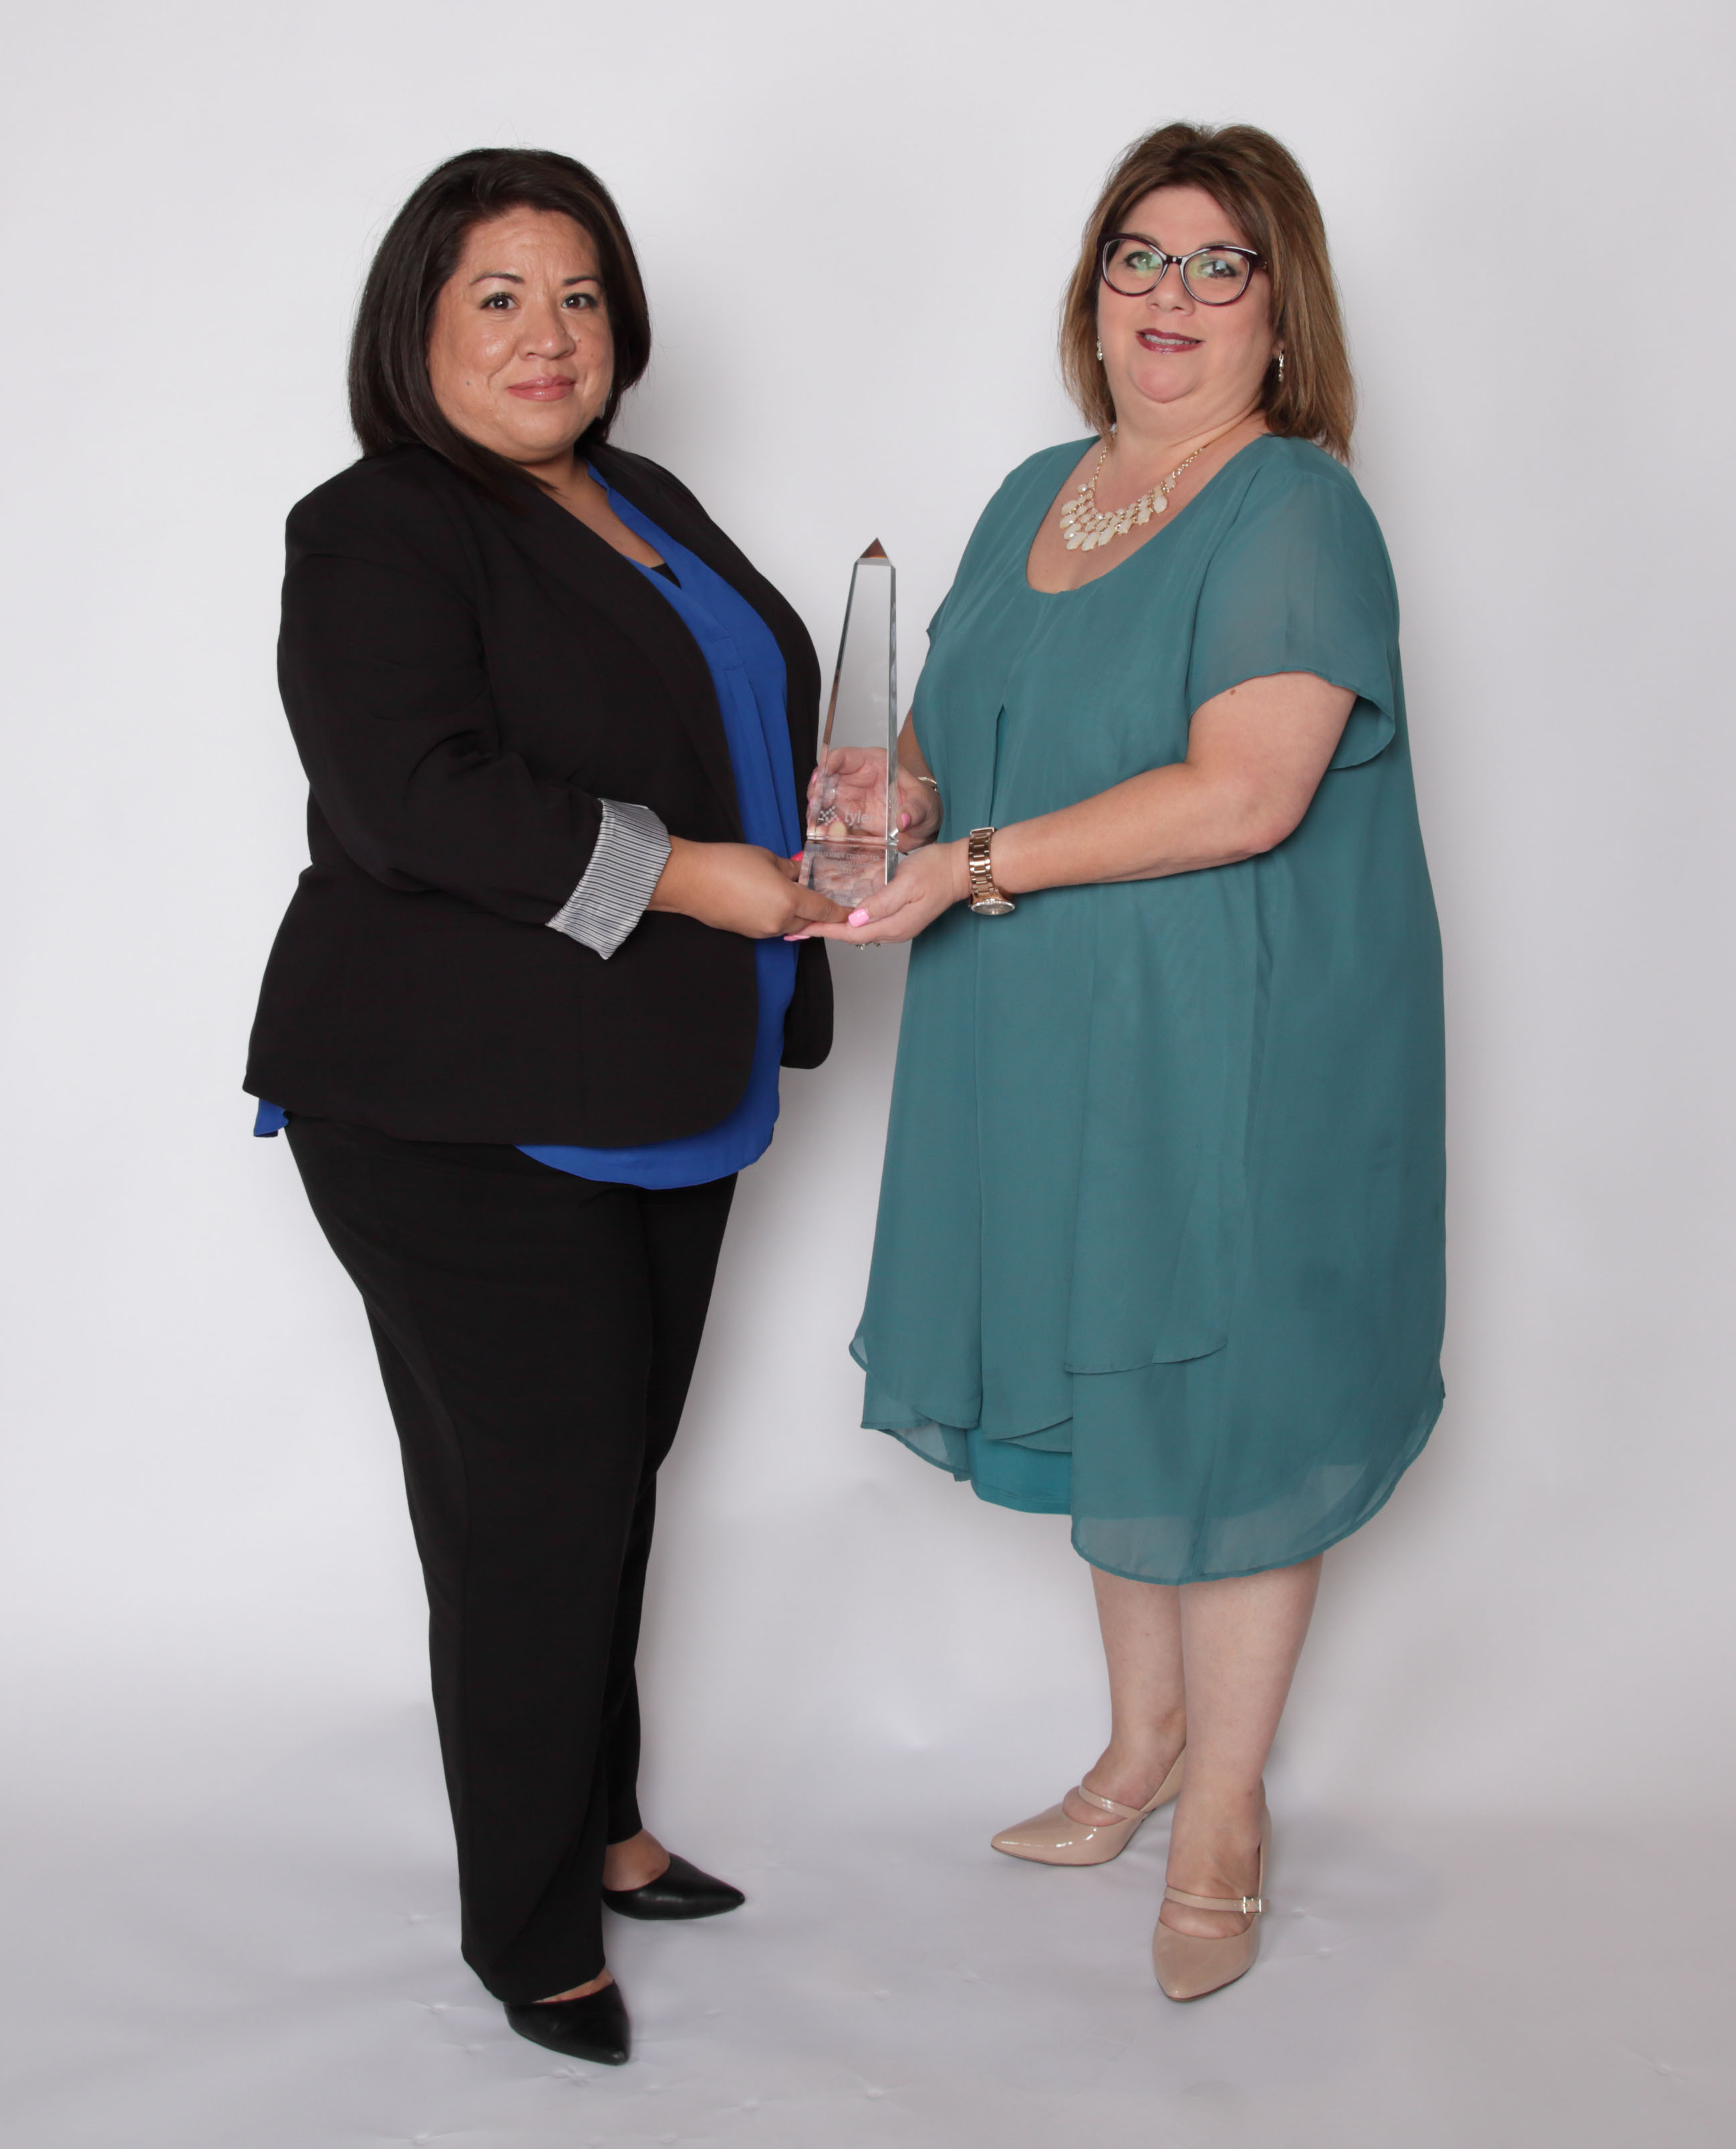 Tyler Excellence Award winners Maritza Aragon and Jeanette Guzman of the Williamson County Tax Assessor/Collection, Texas. (Photo: Business Wire)